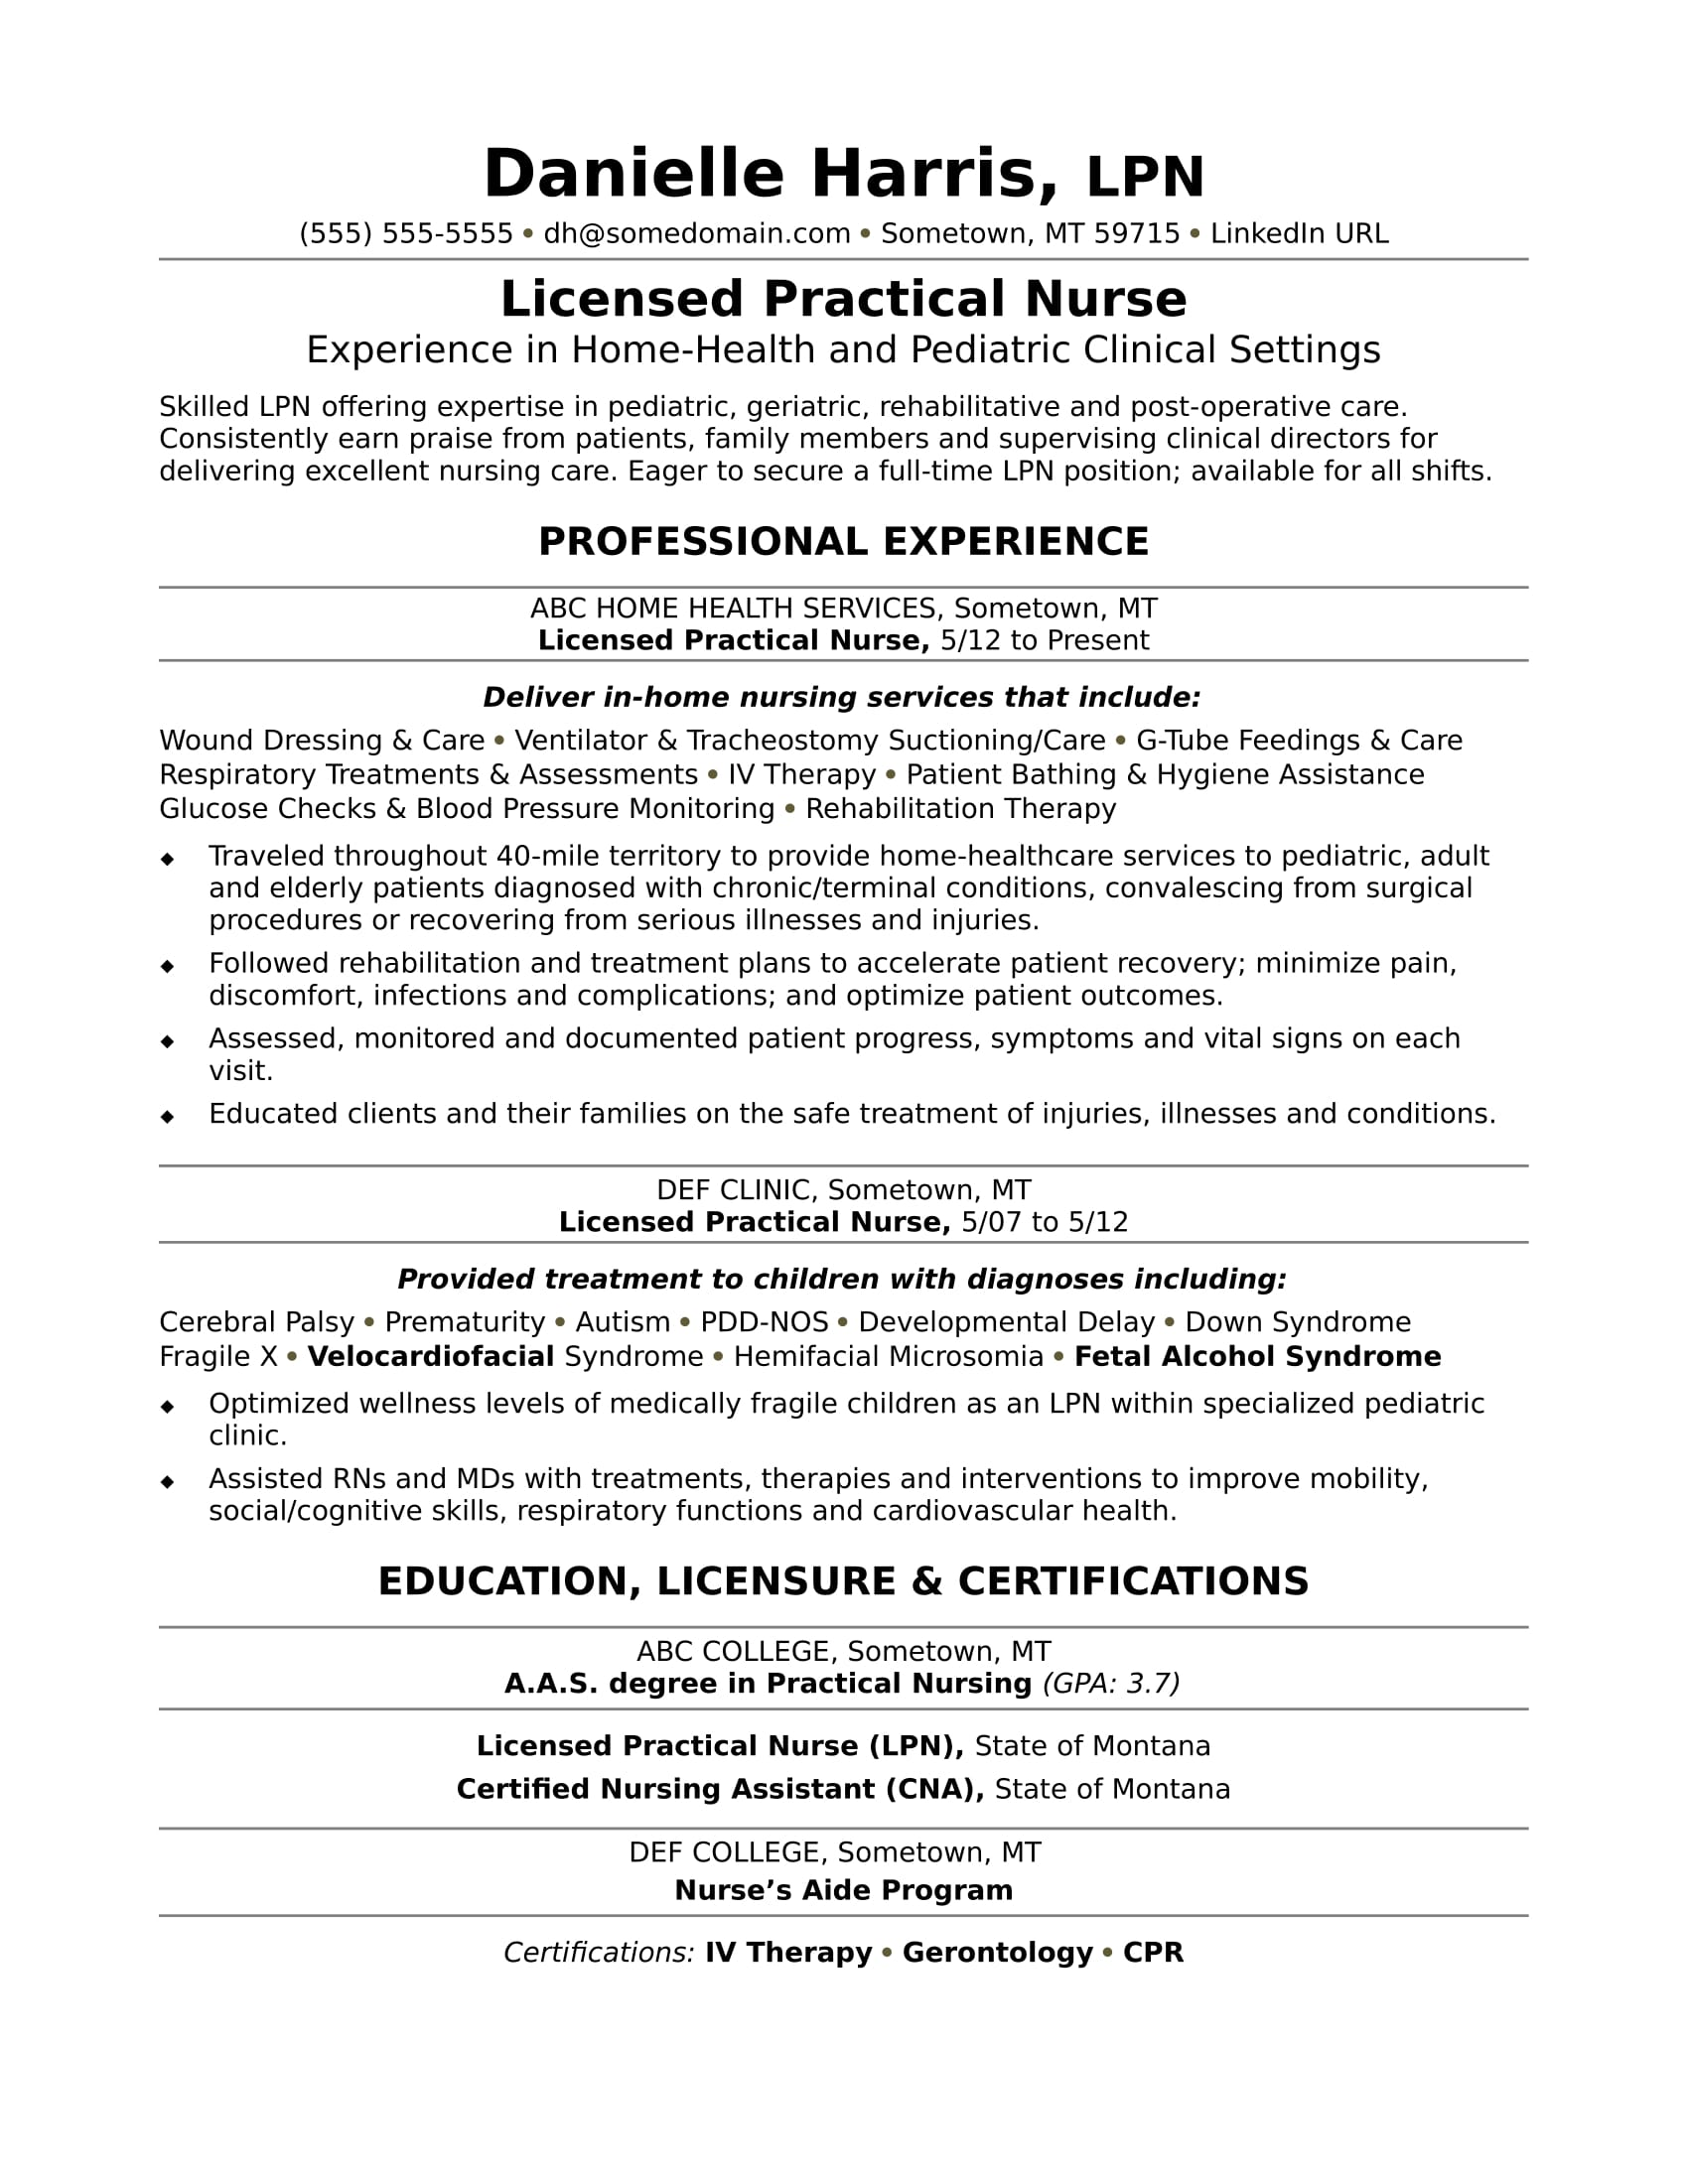 Wonderful Licensed Practical Nurse Resume Sample  Nurse Sample Resume